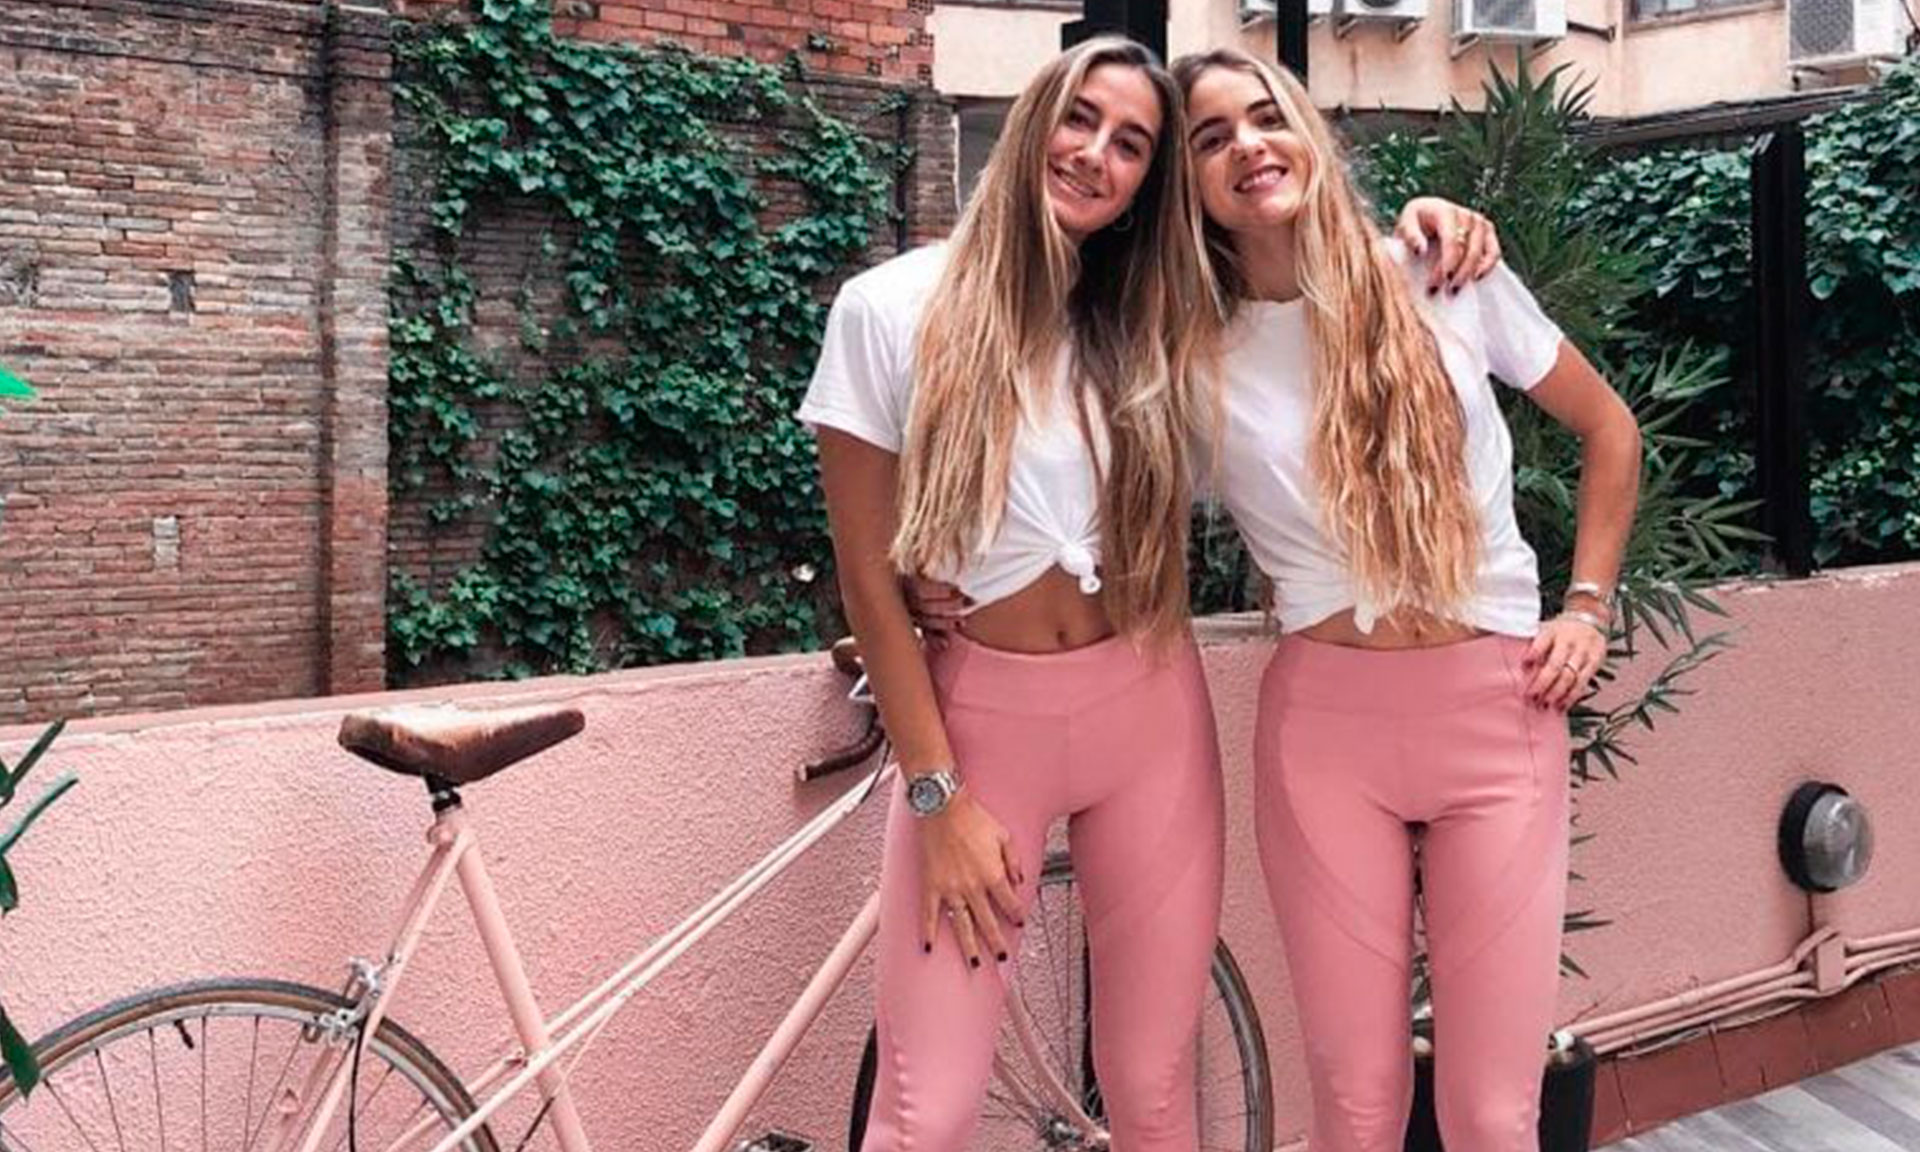 Caviró Girls 2019 colaboración con influencers